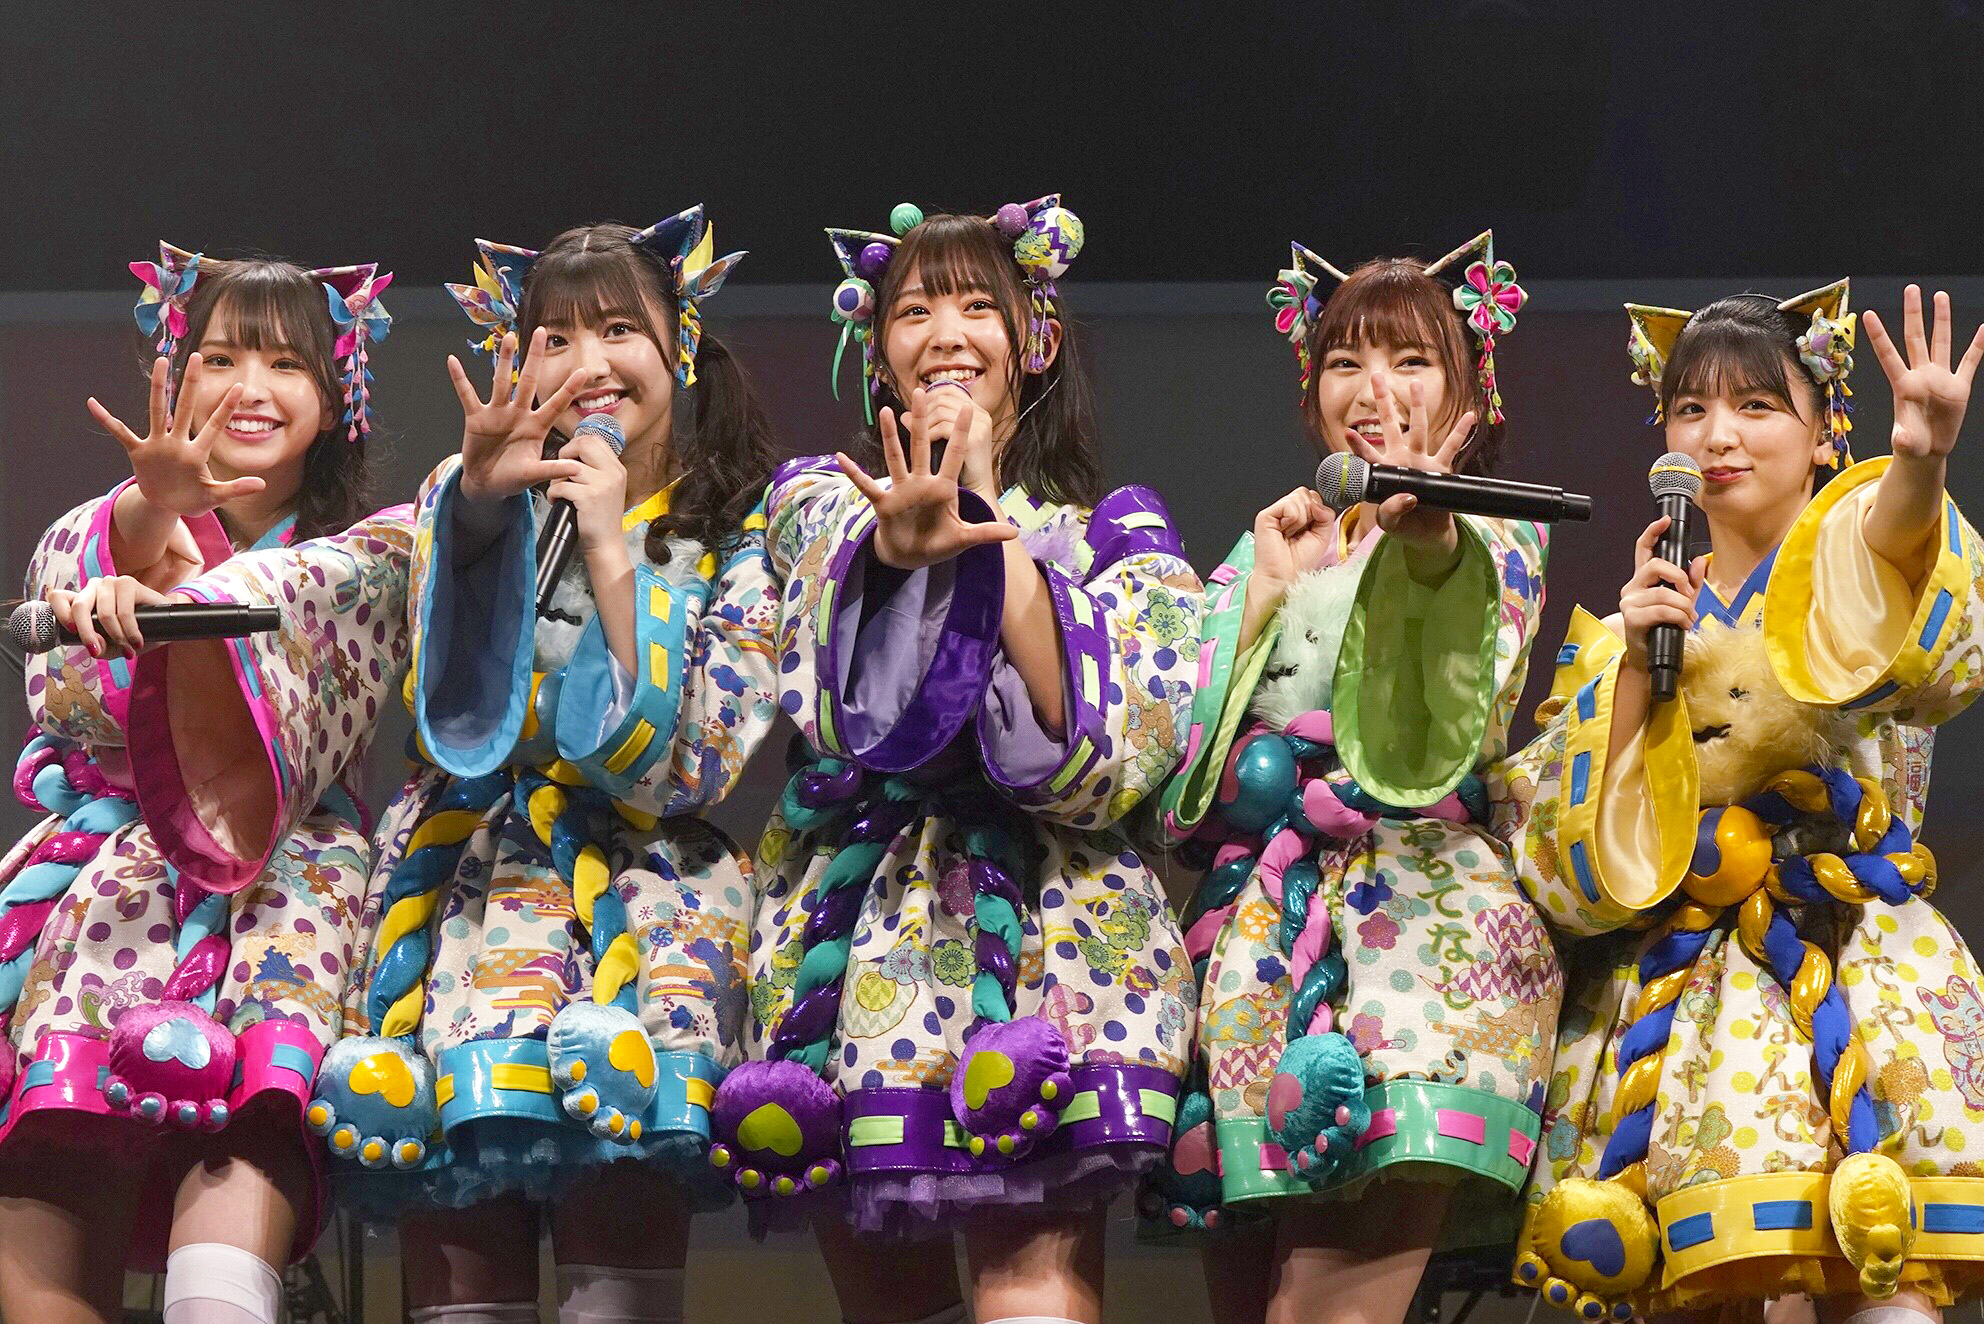 Wasuta 5th Anniversary